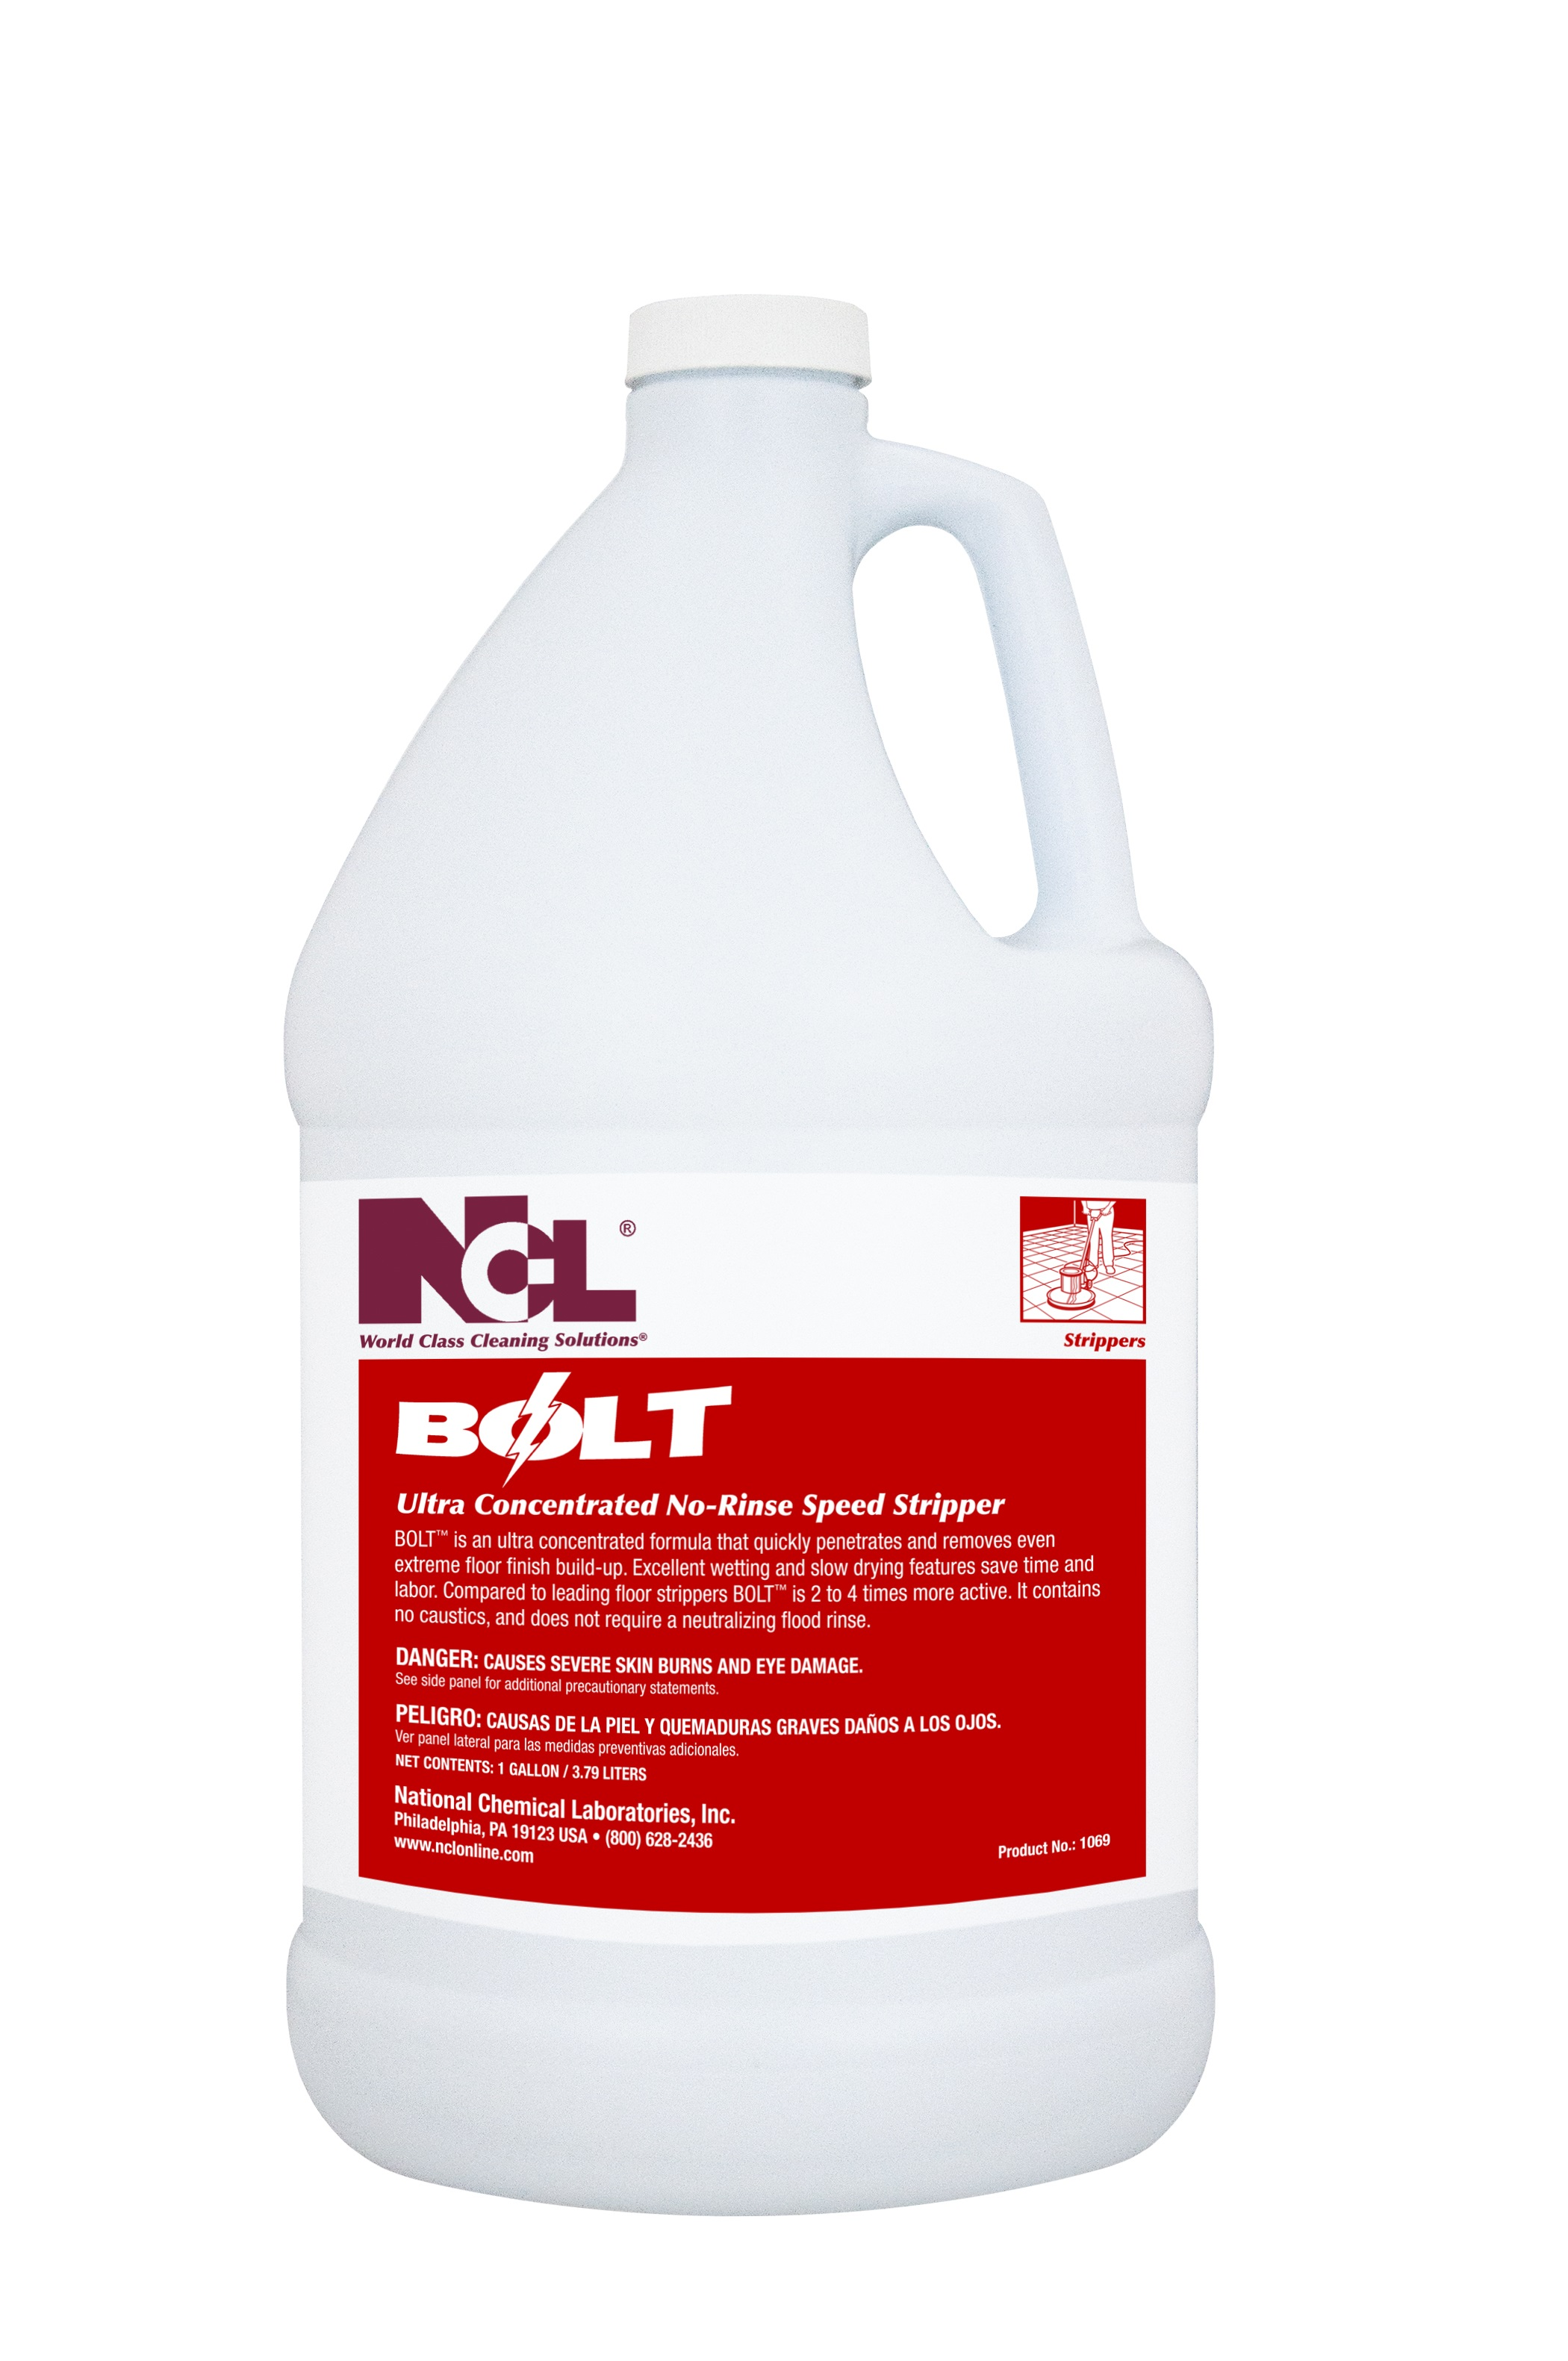 Ncl Bolt Ultra Concentrated No Rinse Stripper 12 Qt